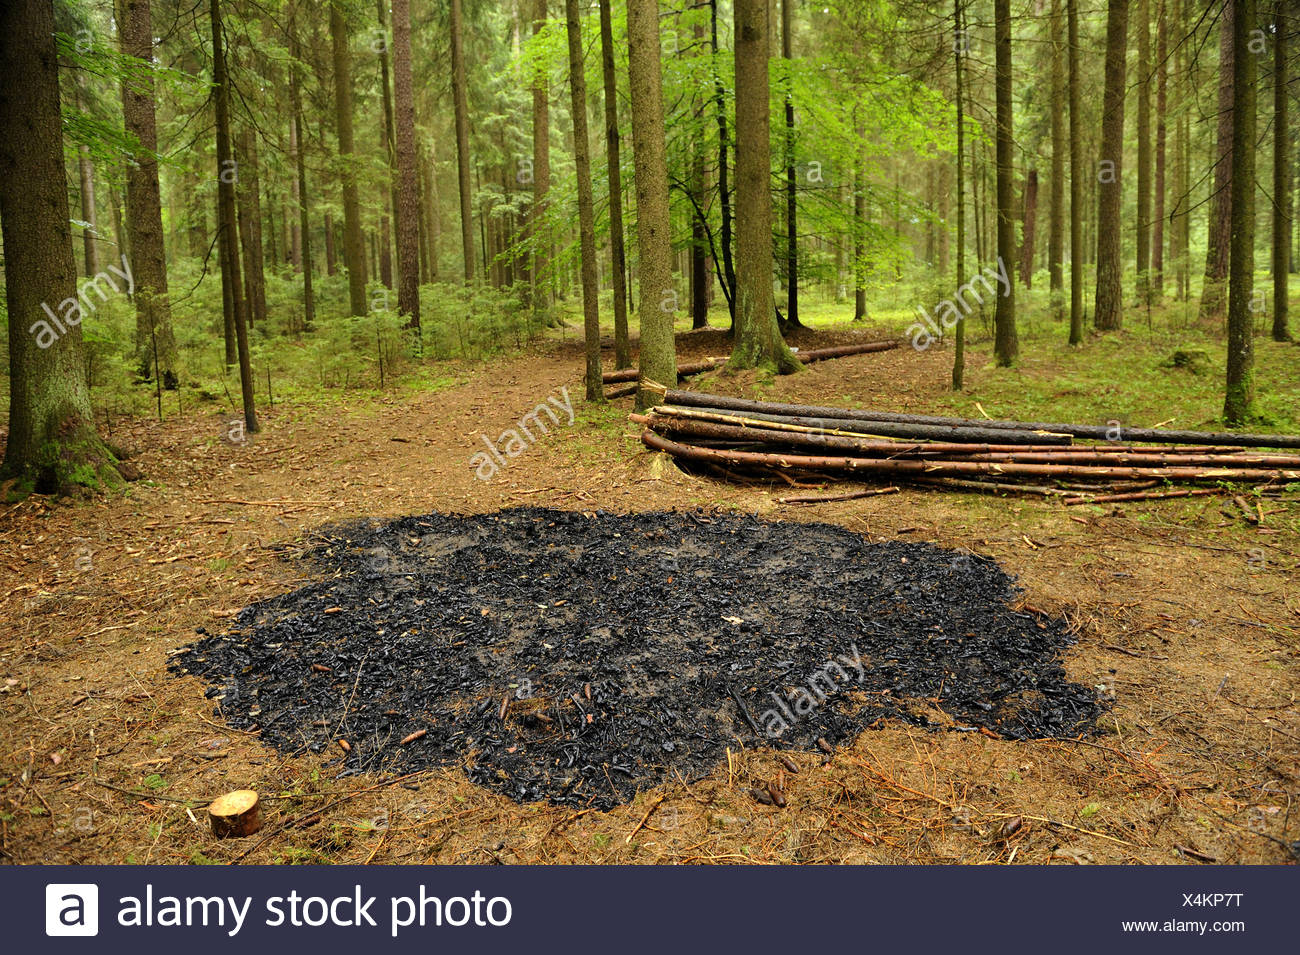 Norway spruce (Picea abies), fire place in a spruce forest, Germany, Bavaria, Upper Palatinate - Stock Image